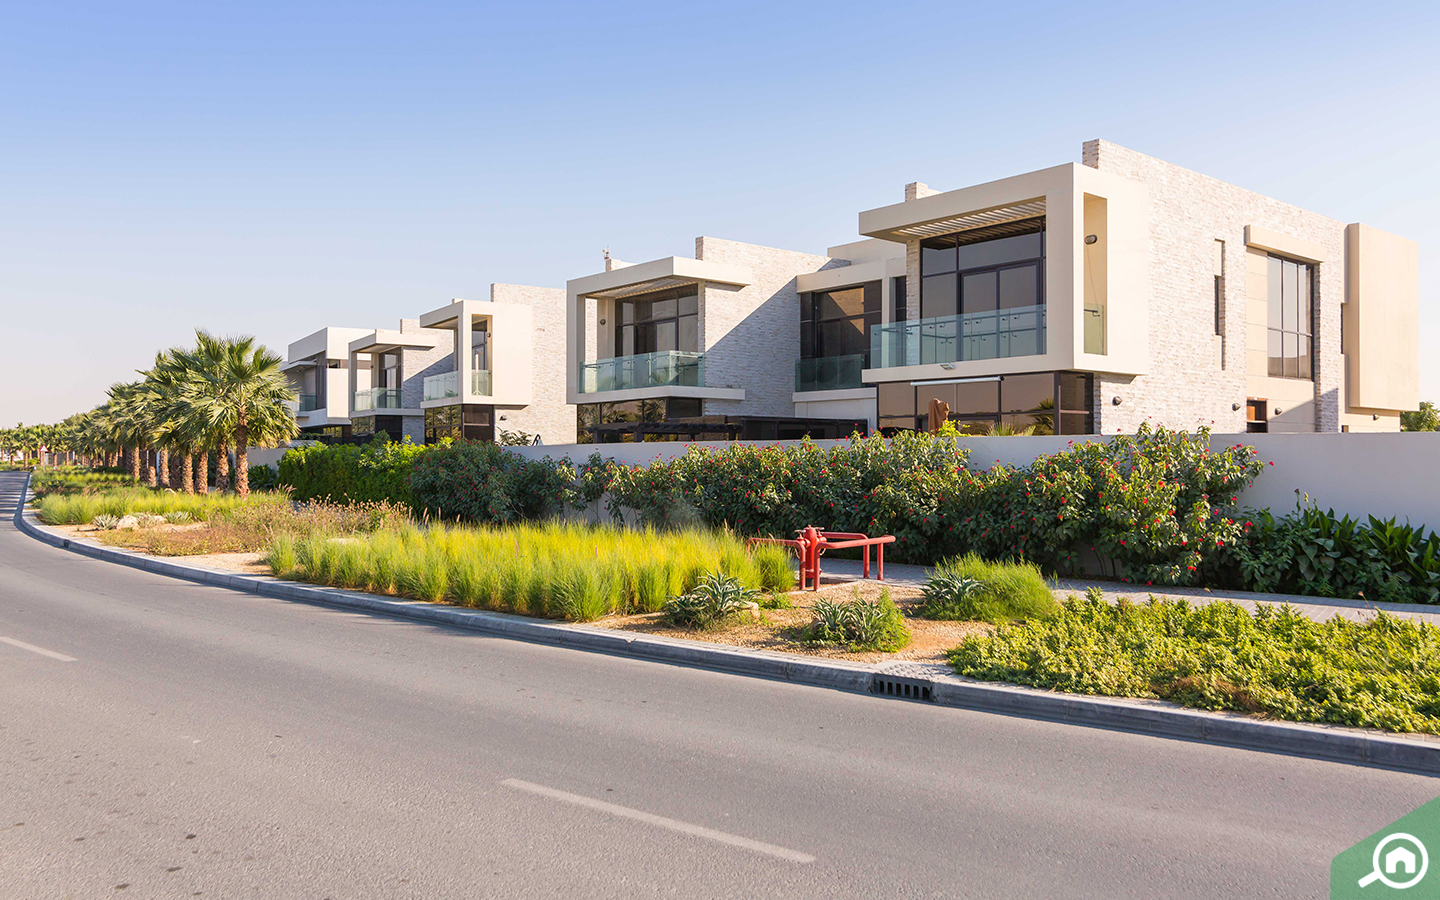 View of 3 BHK Villas in Dubai in the DAMAC Hills community